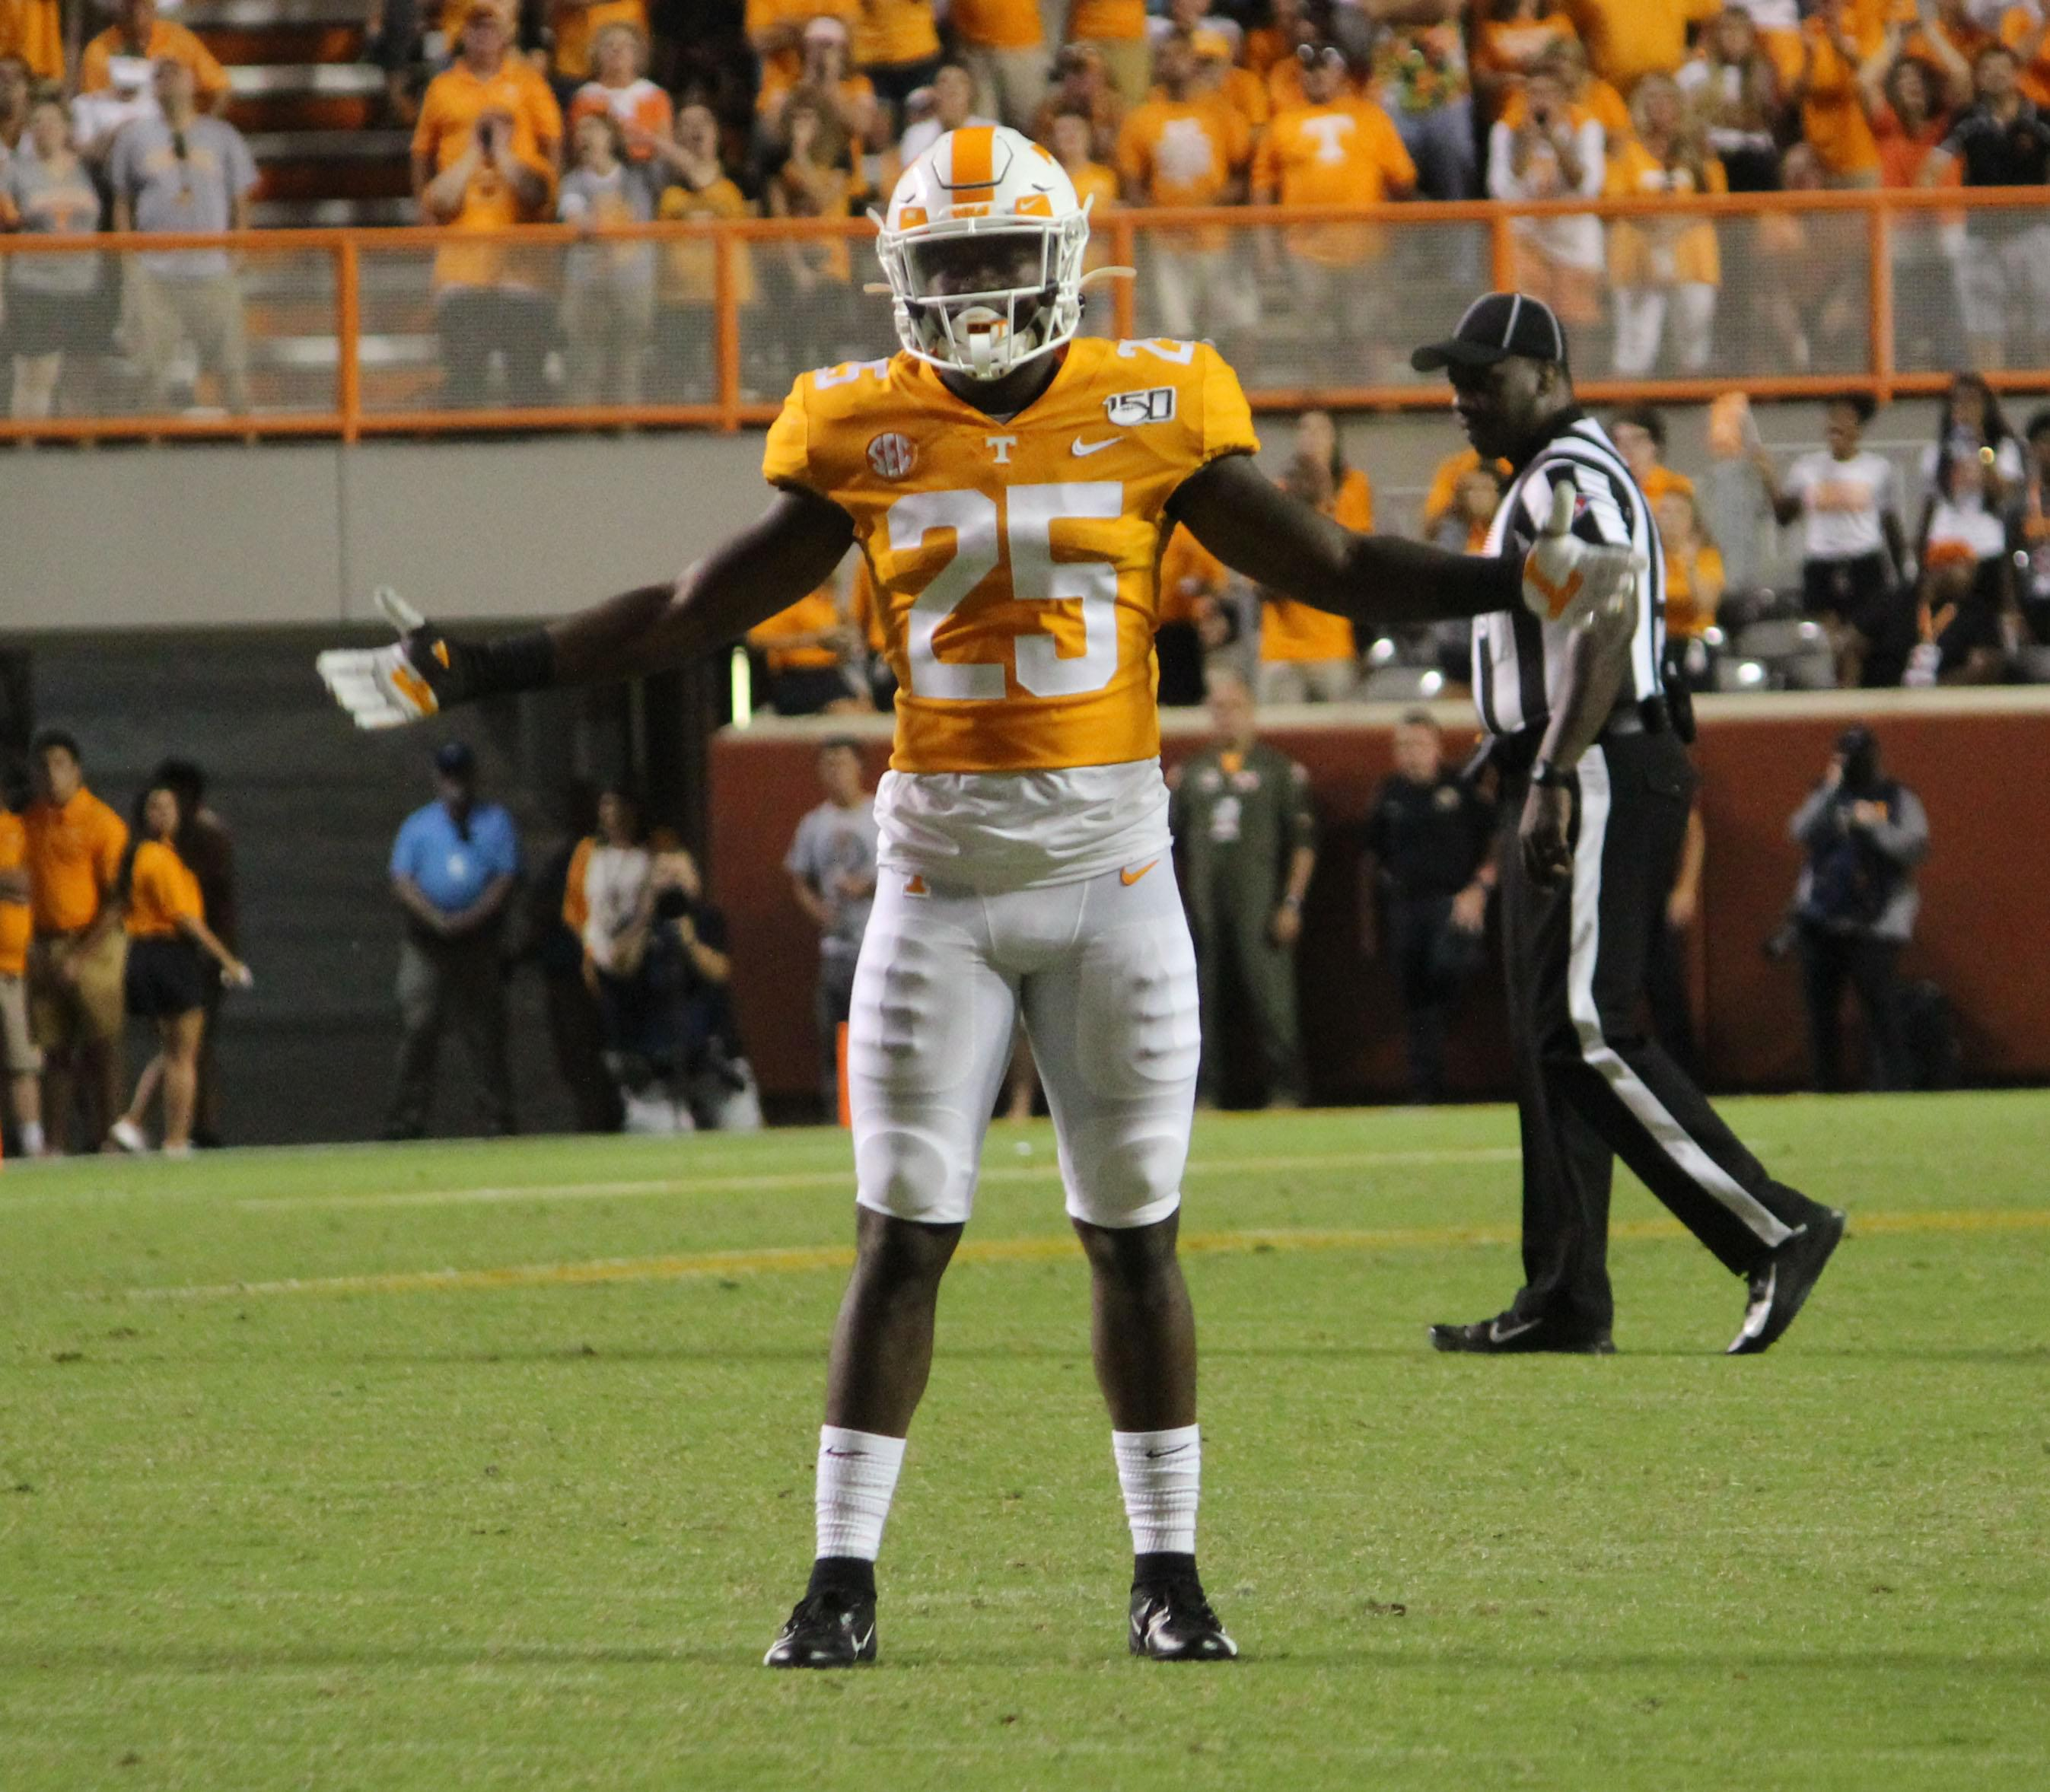 Silverberg: What to take note of from Tennessee's win over UTC